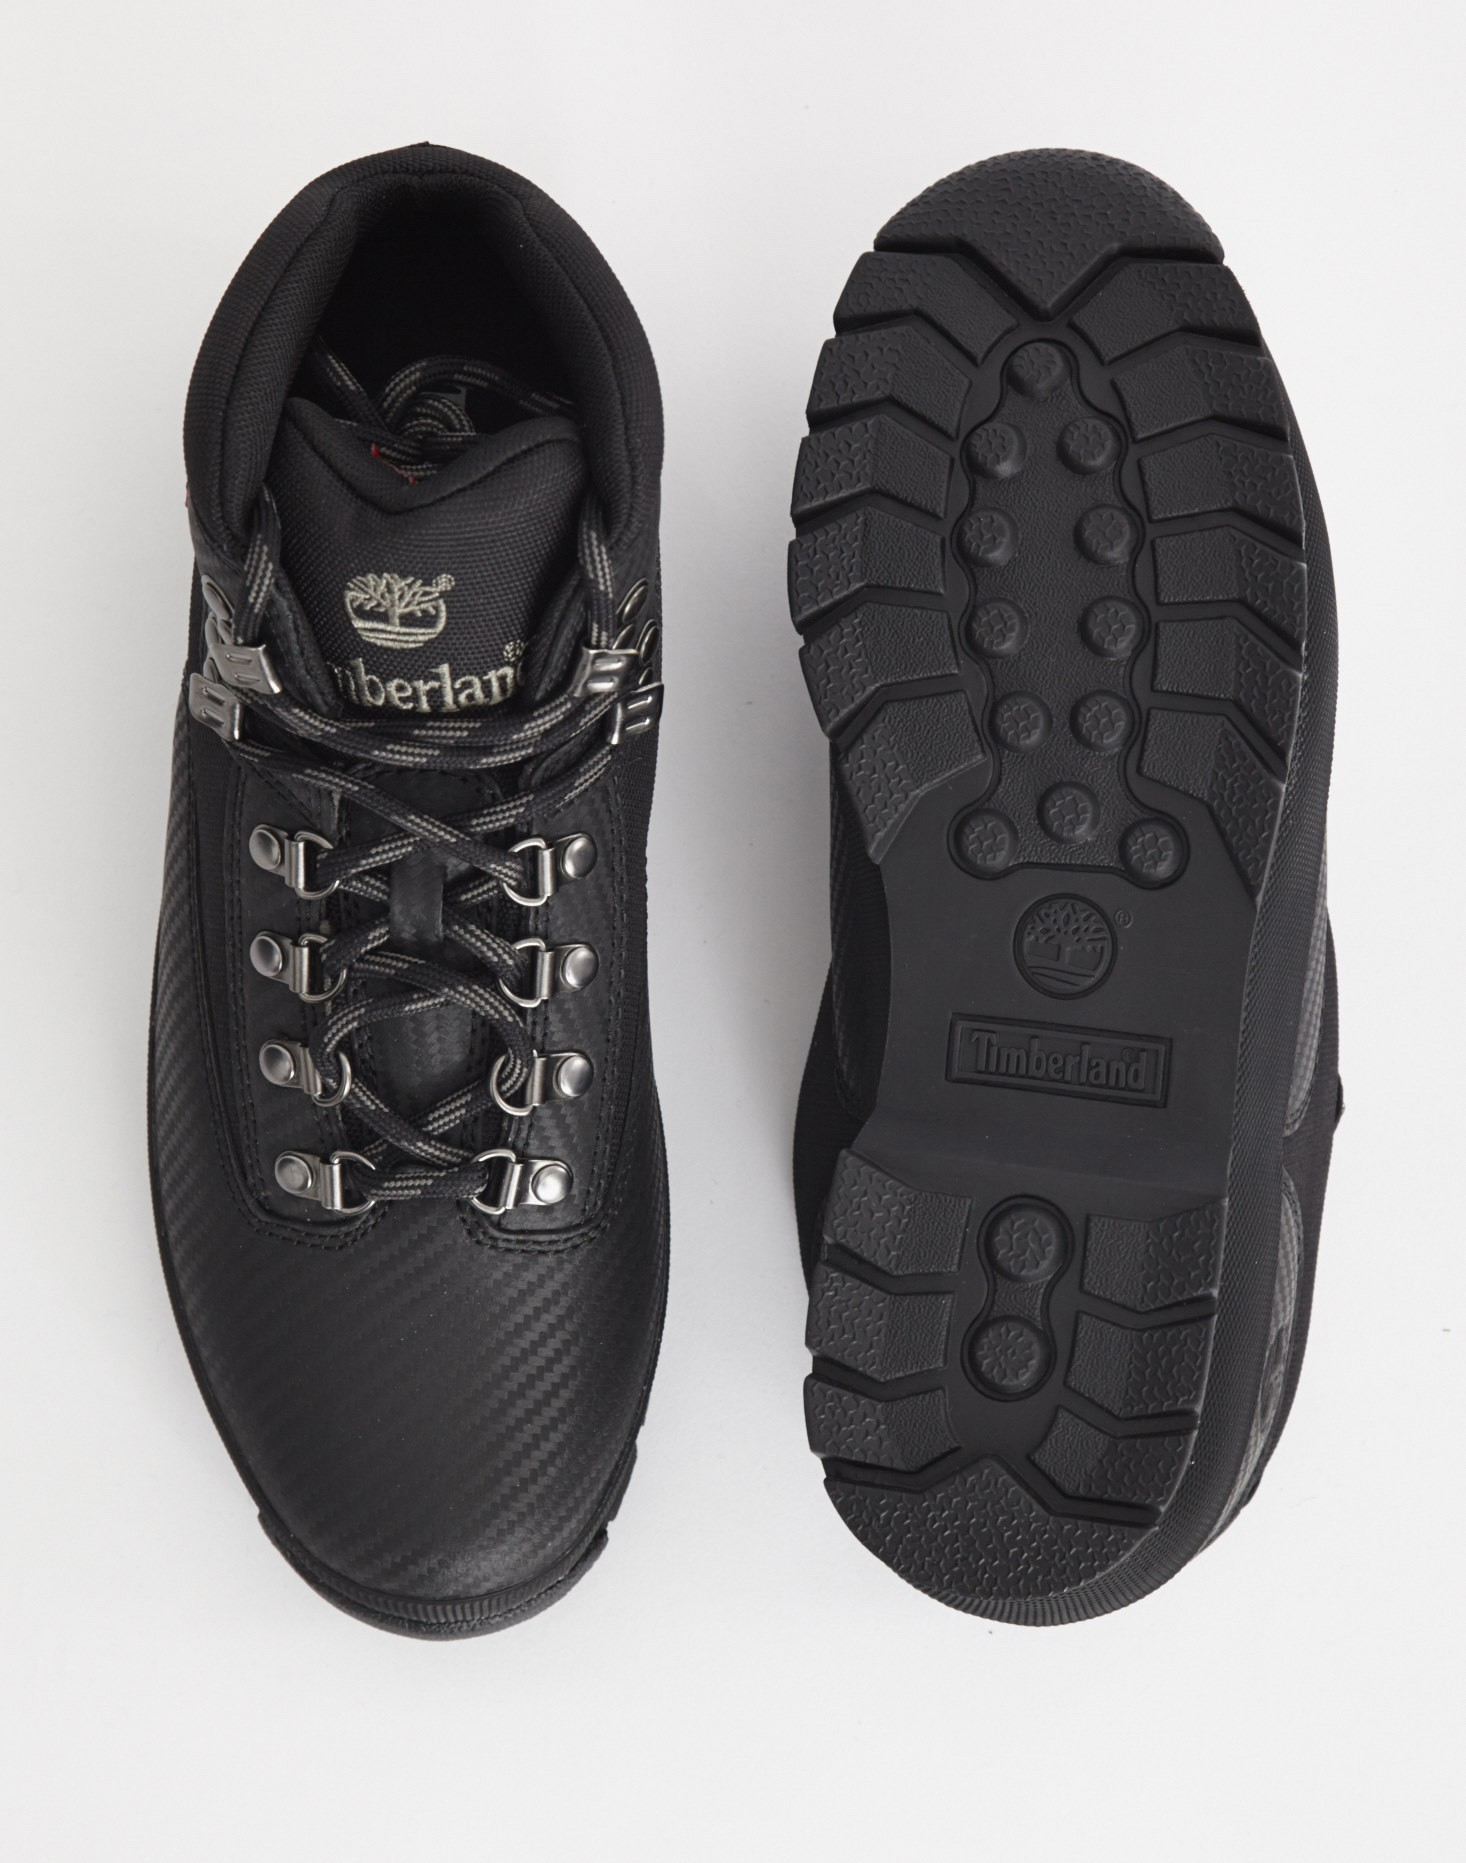 Timberland Euro Hiker Mid Fabric And Leather Boot Black In